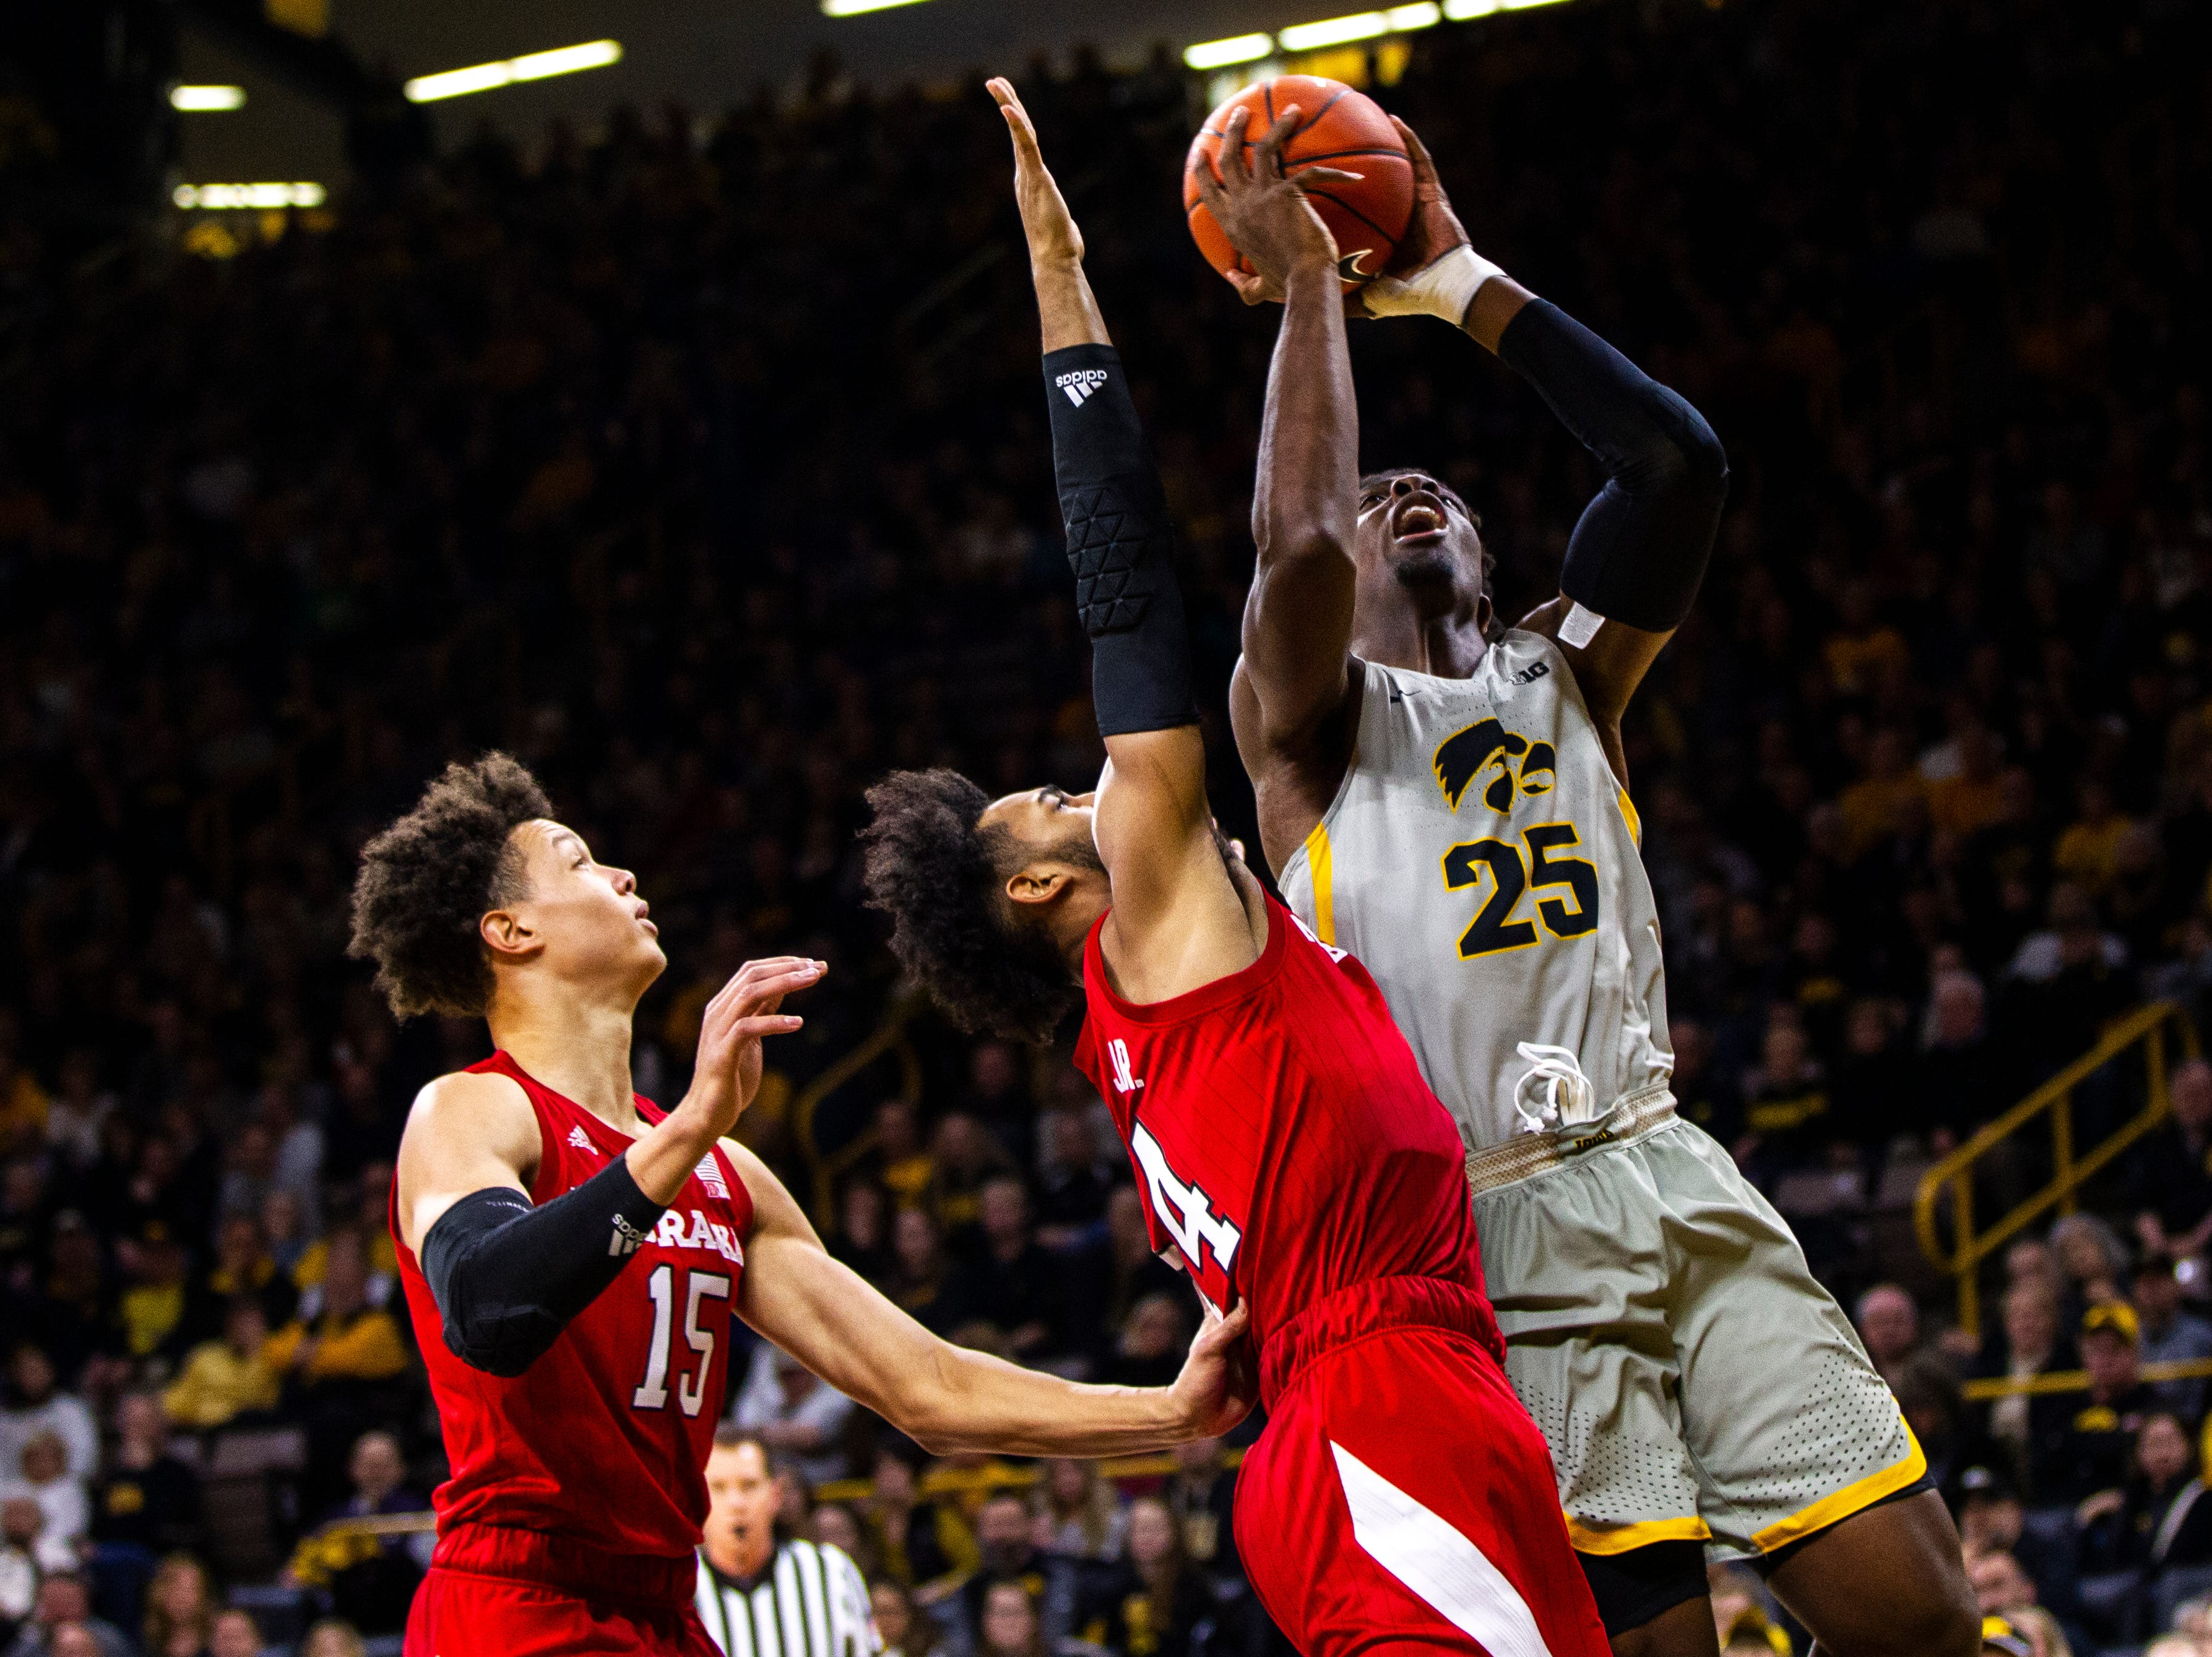 Iowa forward Tyler Cook (25) attempts a basket while getting defended by Nebraska forward Isaac Copeland Jr. (14) during a NCAA Big Ten Conference men's basketball game on Sunday, Jan. 6, 2019, at the Carver-Hawkeye Arena in Iowa City, Iowa.